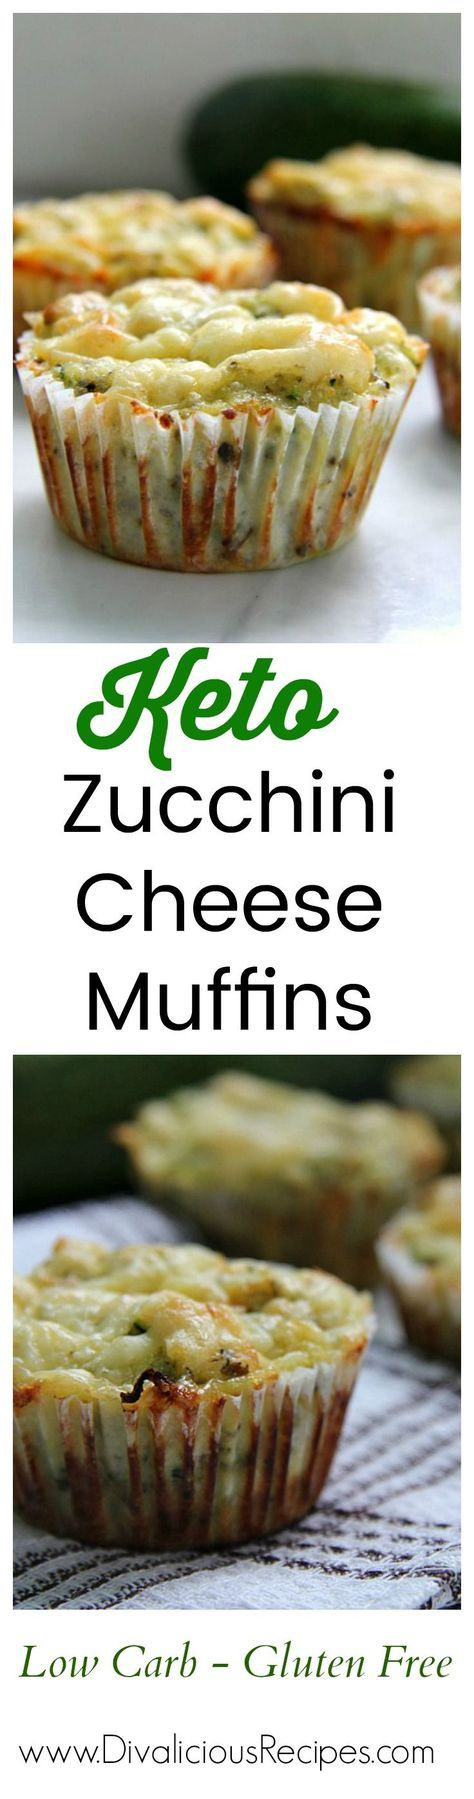 keto zucchini cheese muffins recette food keto gaps. Black Bedroom Furniture Sets. Home Design Ideas